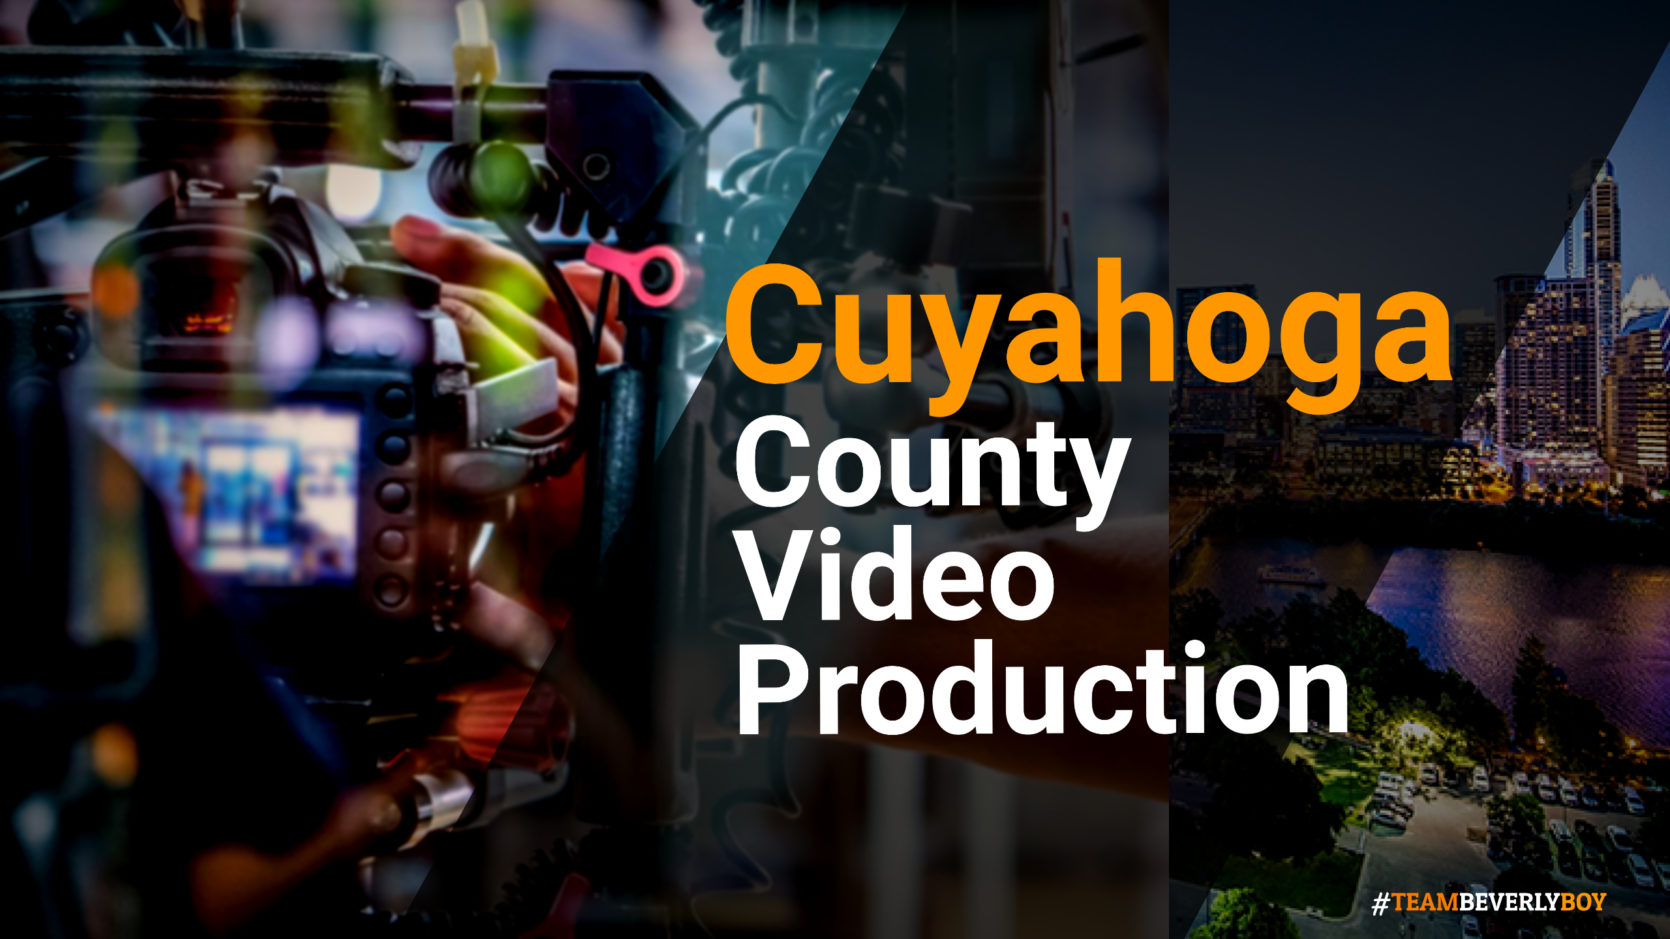 Cuyahoga County Video Production